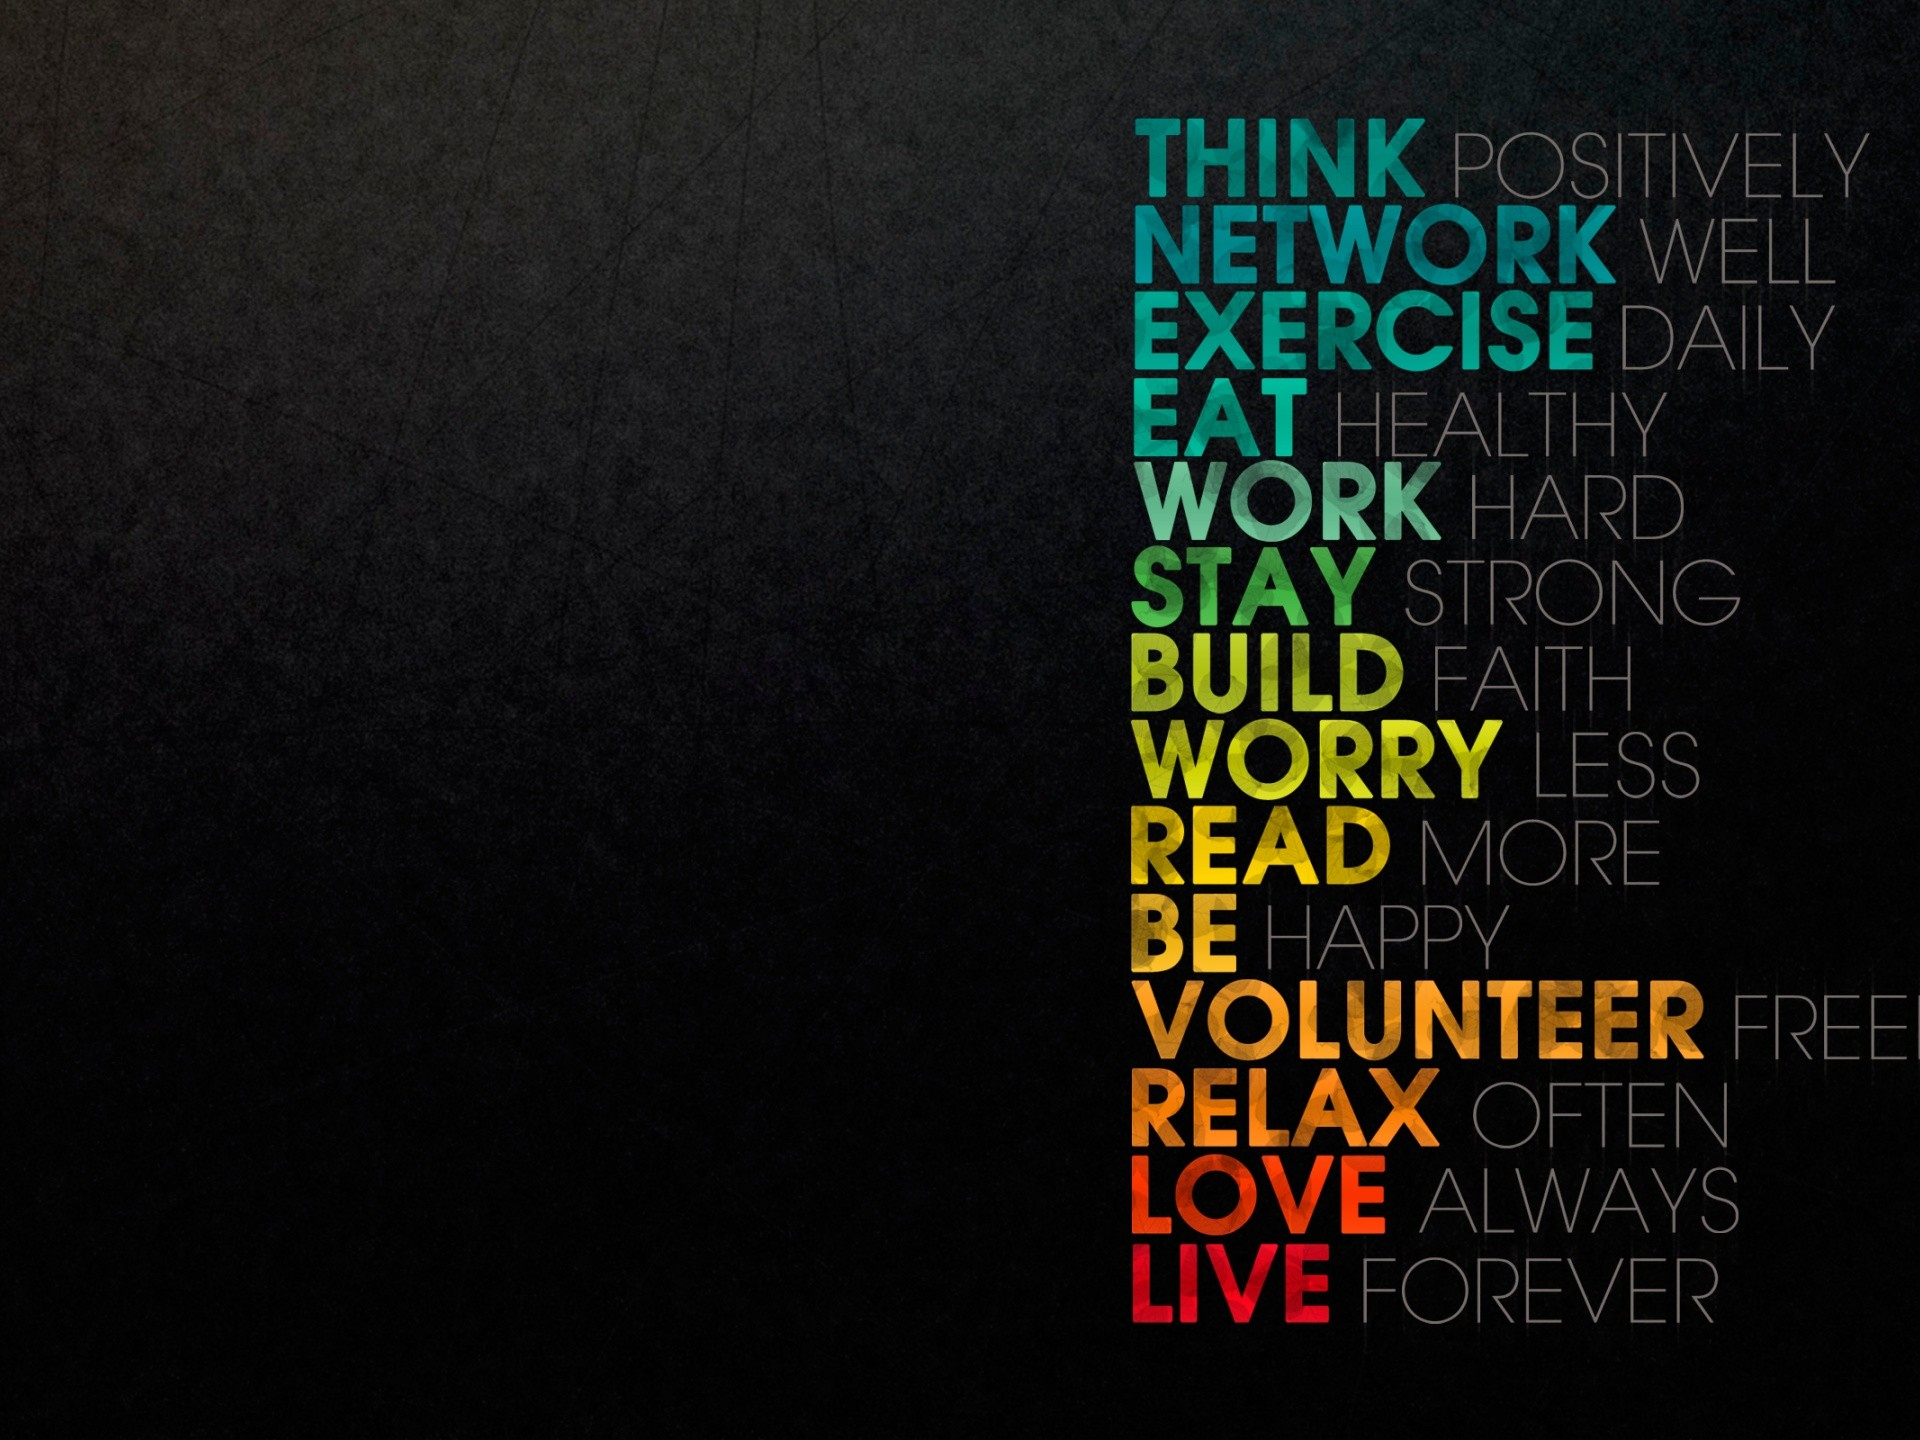 1920x1440 awesome HD Motivational Wallpapers that Inspires You Everyday Check more at  http://dougleschan